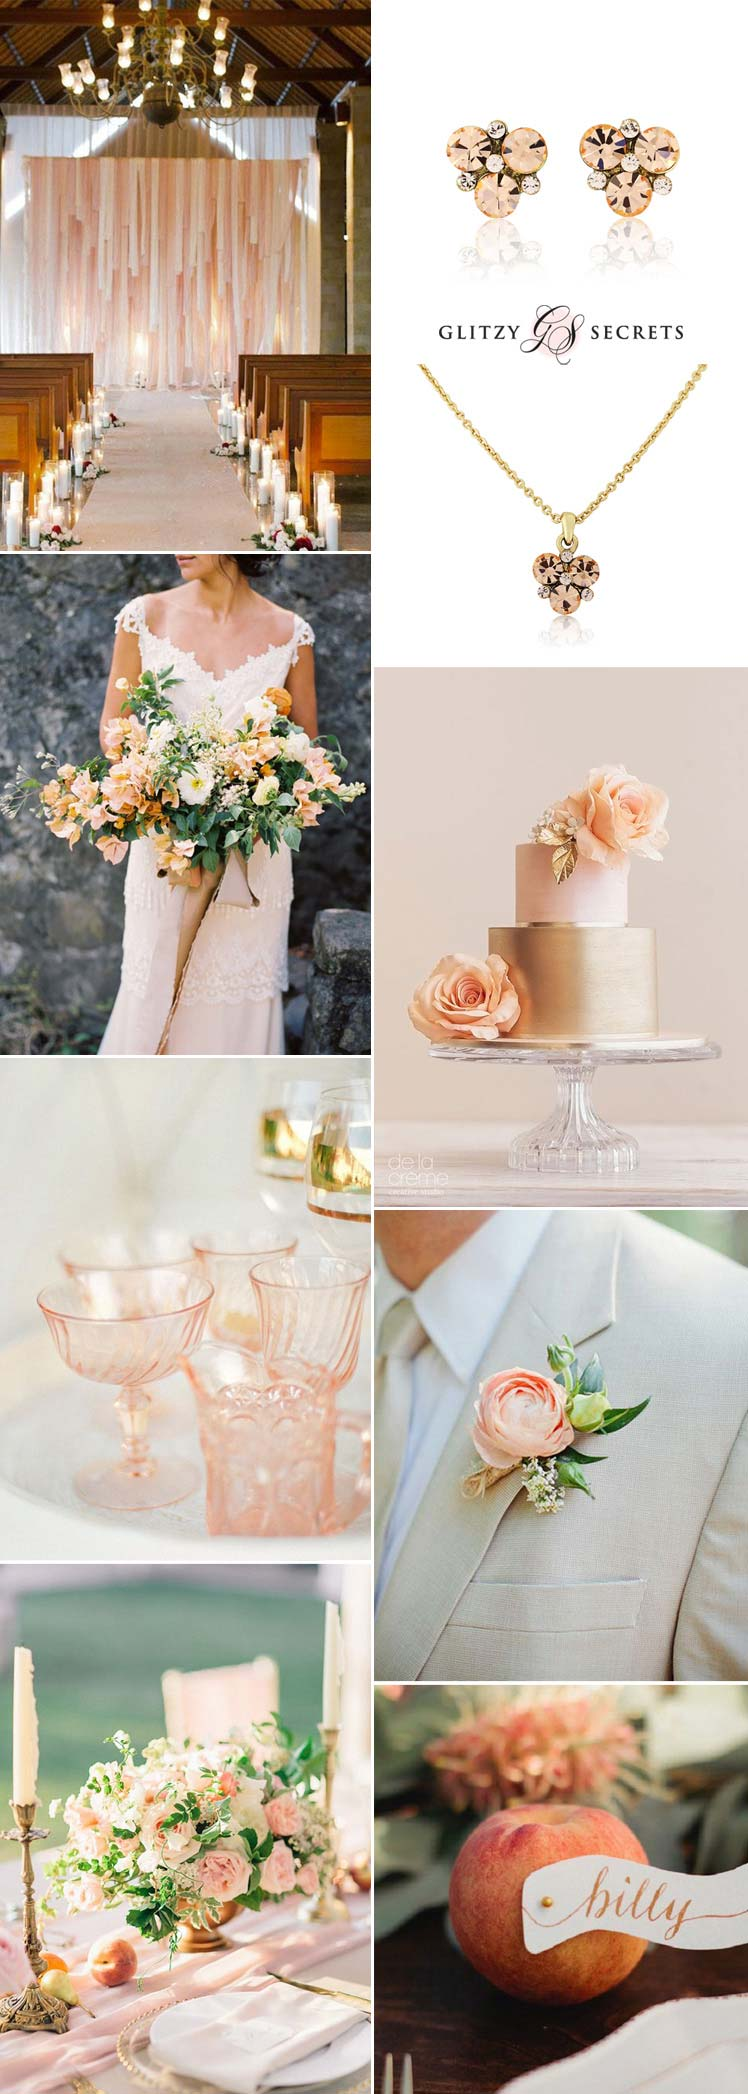 beautiful peach and gold wedding inspiration